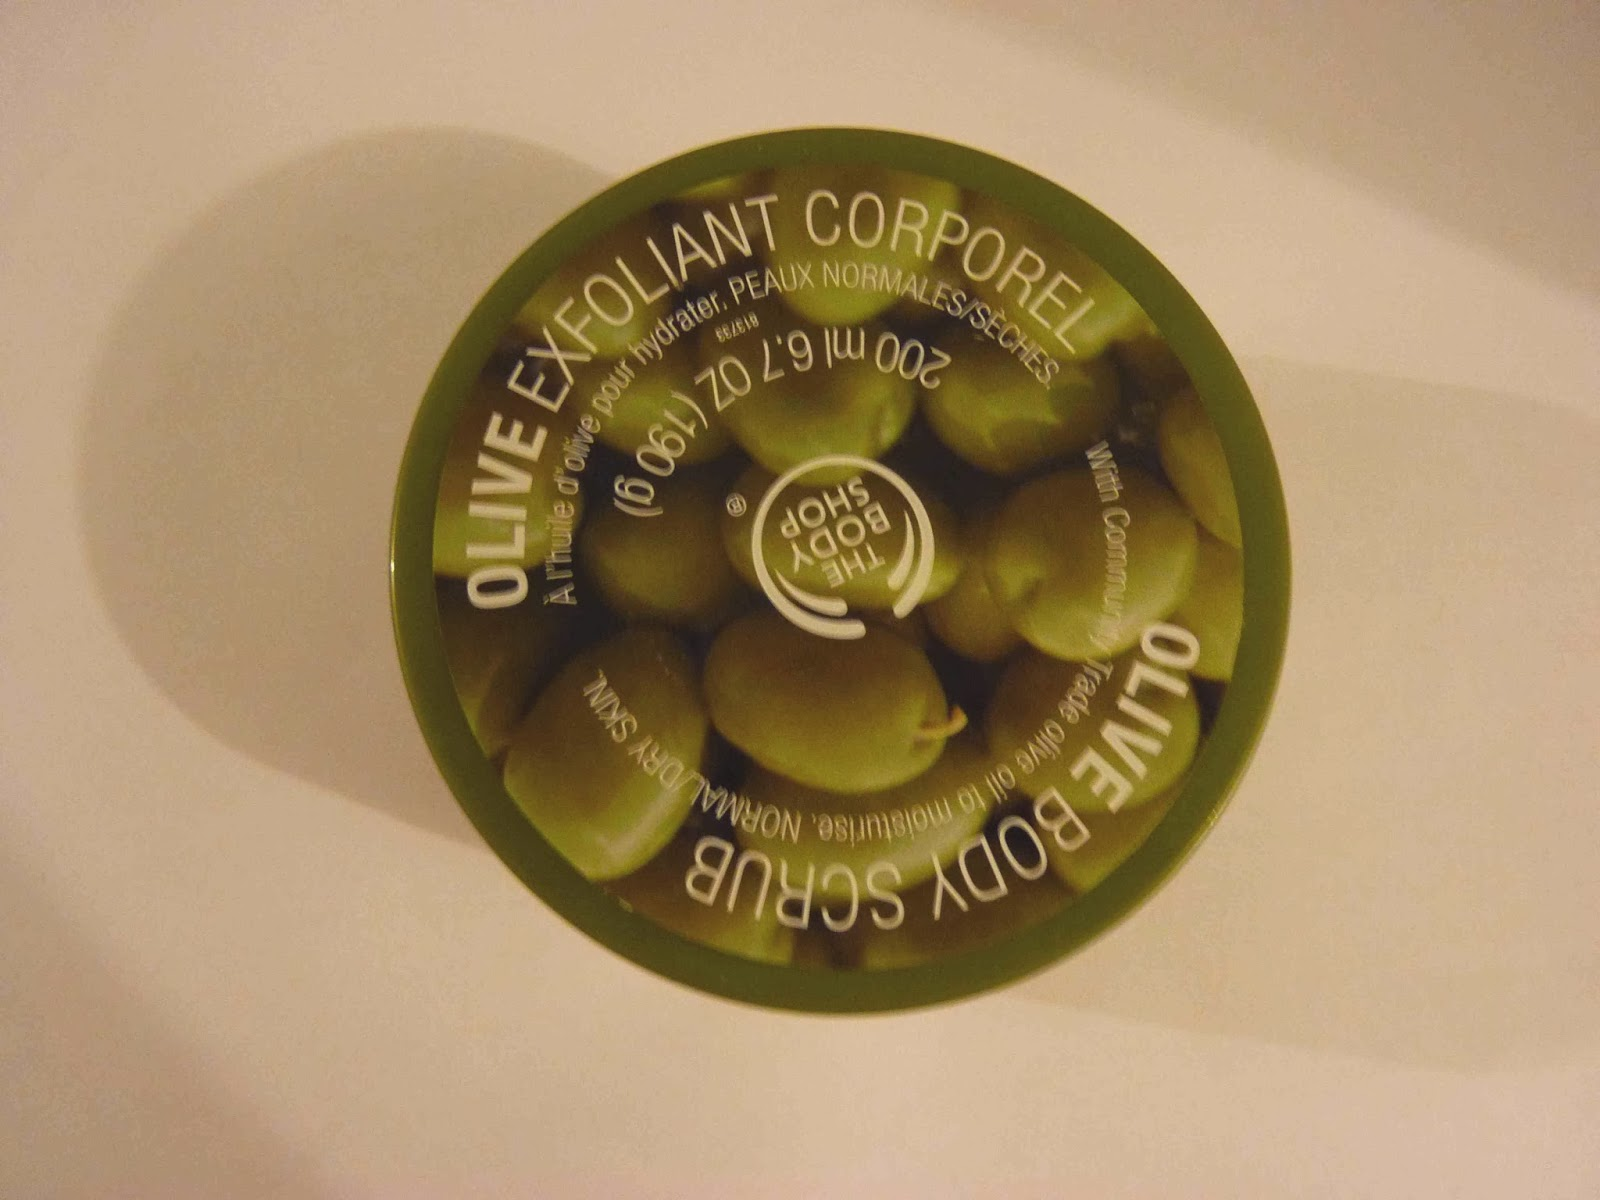 TBS, exfoliant corporel, exfoliant à l'olive the body shop,